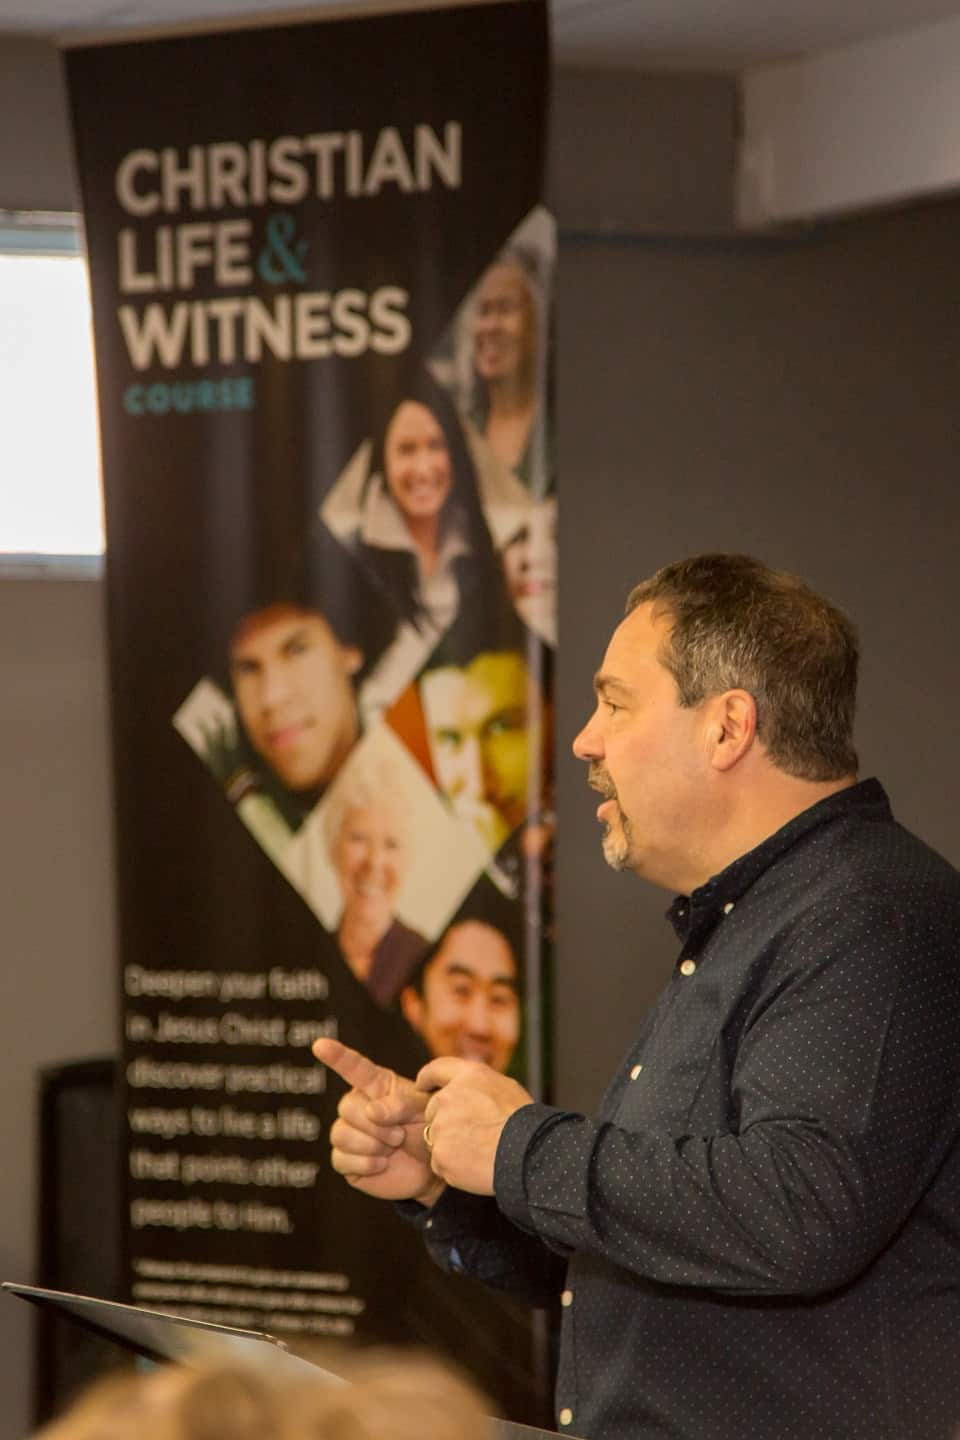 Dan Toner, director of the Quinte Celebration of Hope with Will Graham, was one of the Christian Life and Witness Course (CLWC) teachers.